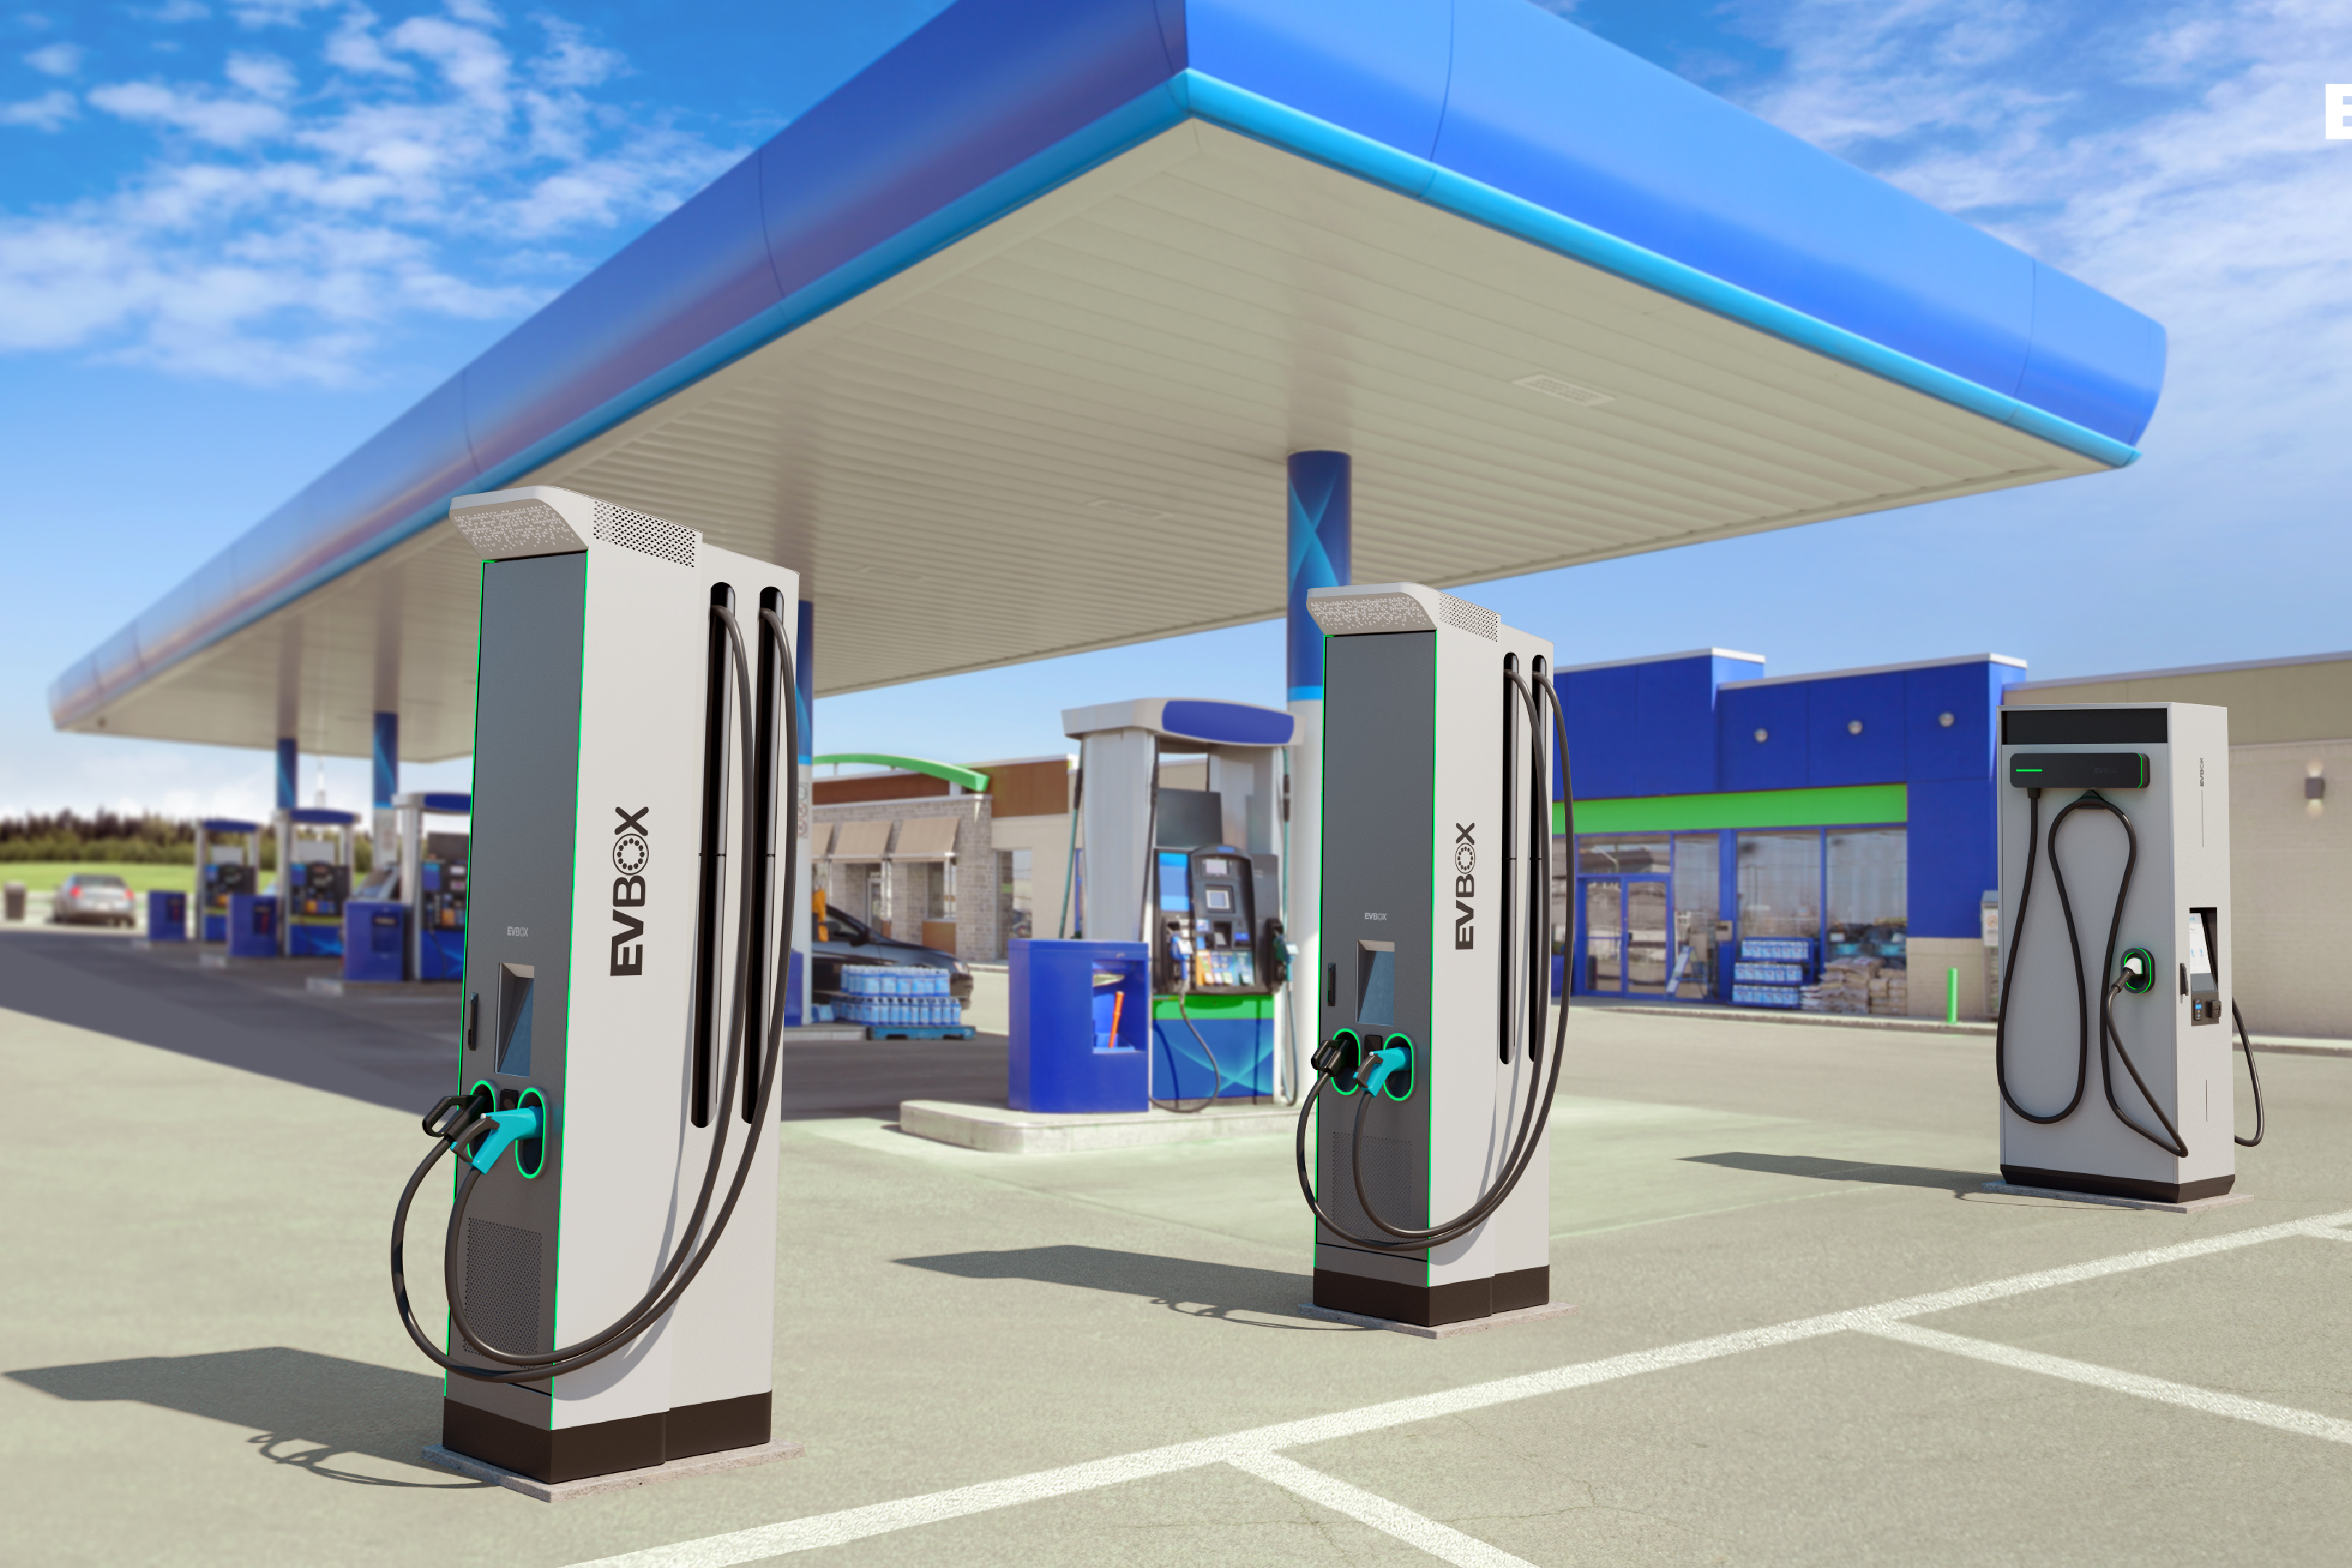 A modern gas station which offers EV charging.